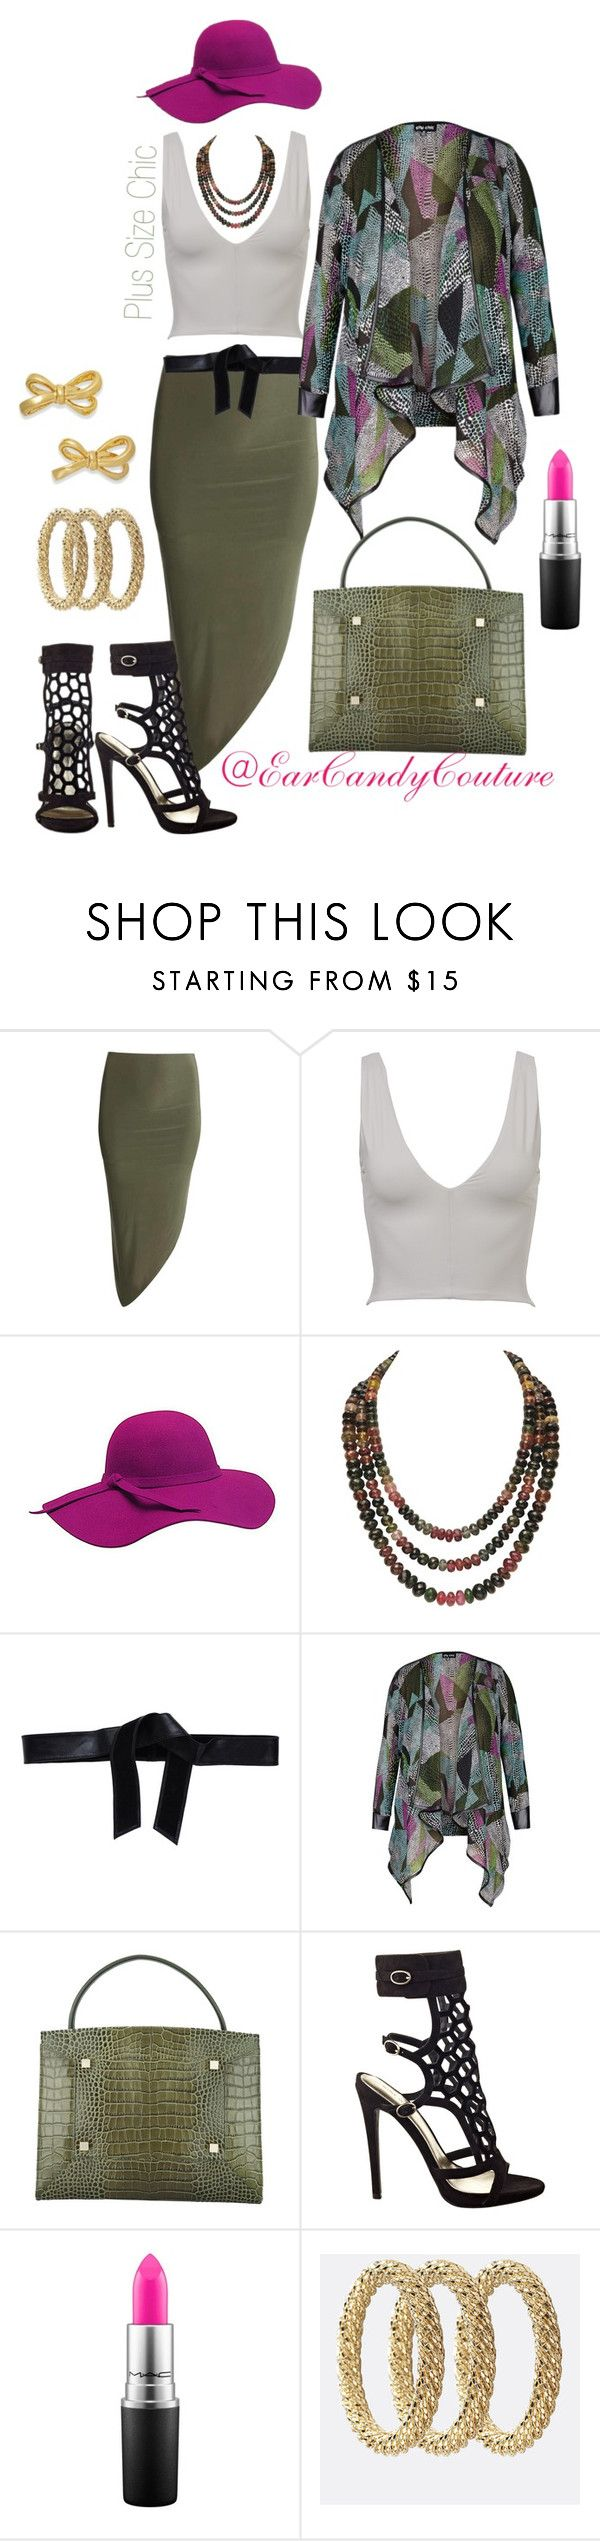 """Untitled #154"" by curvaceouscutie on Polyvore featuring Boardwalk Style, Roÿ Roger's, Manurina, Nine West, MAC Cosmetics, Avenue and Kate Spade"